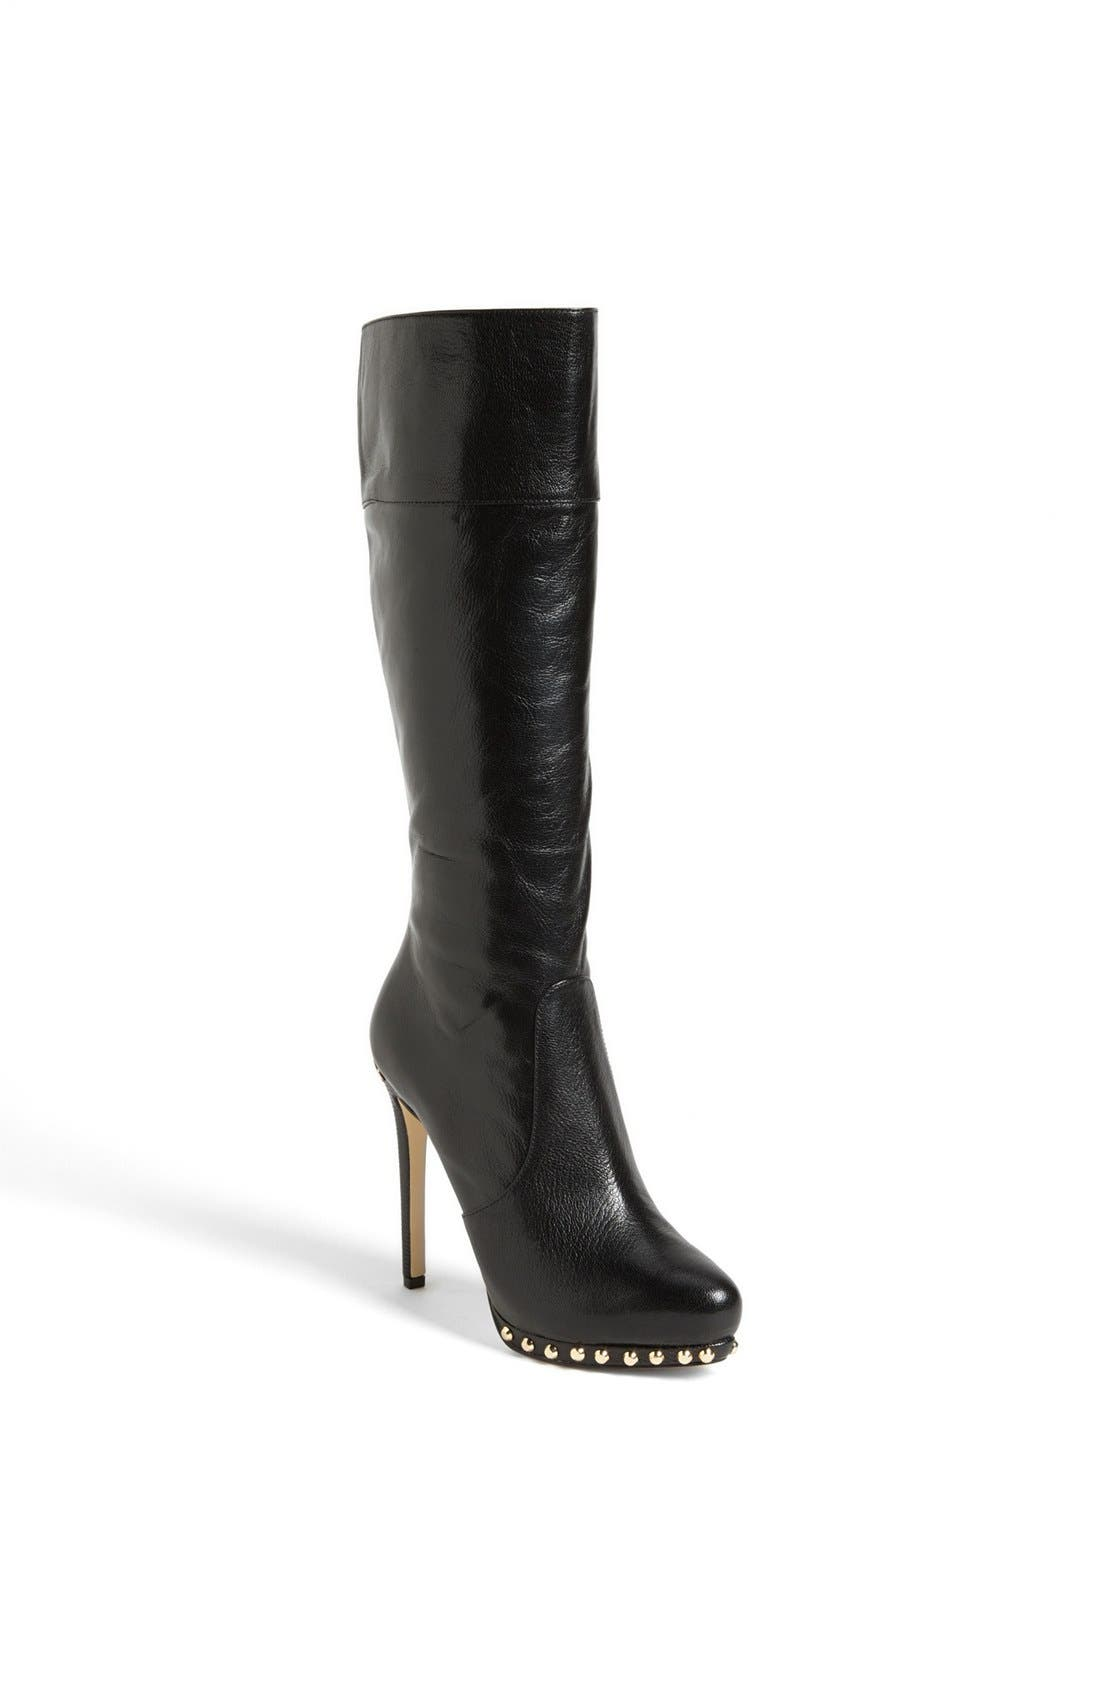 Alternate Image 1 Selected - MICHAEL Michael Kors 'Ailee' Tall Boot